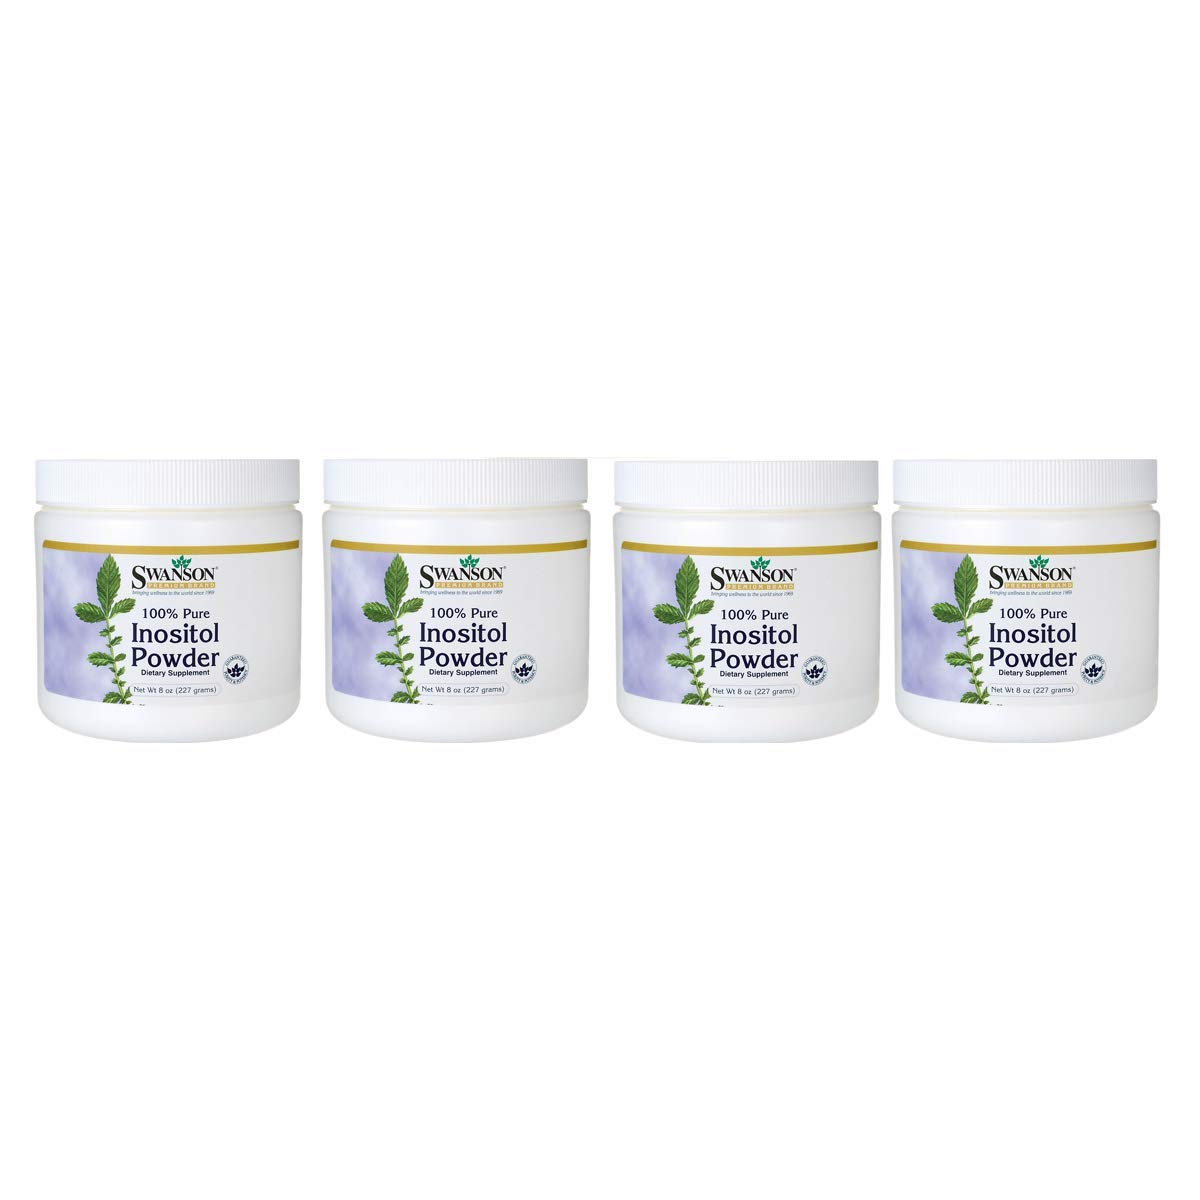 Swanson 100% Pure Inositol Powder 8 Ounce (227 g) Pwdr 4 Pack by Swanson